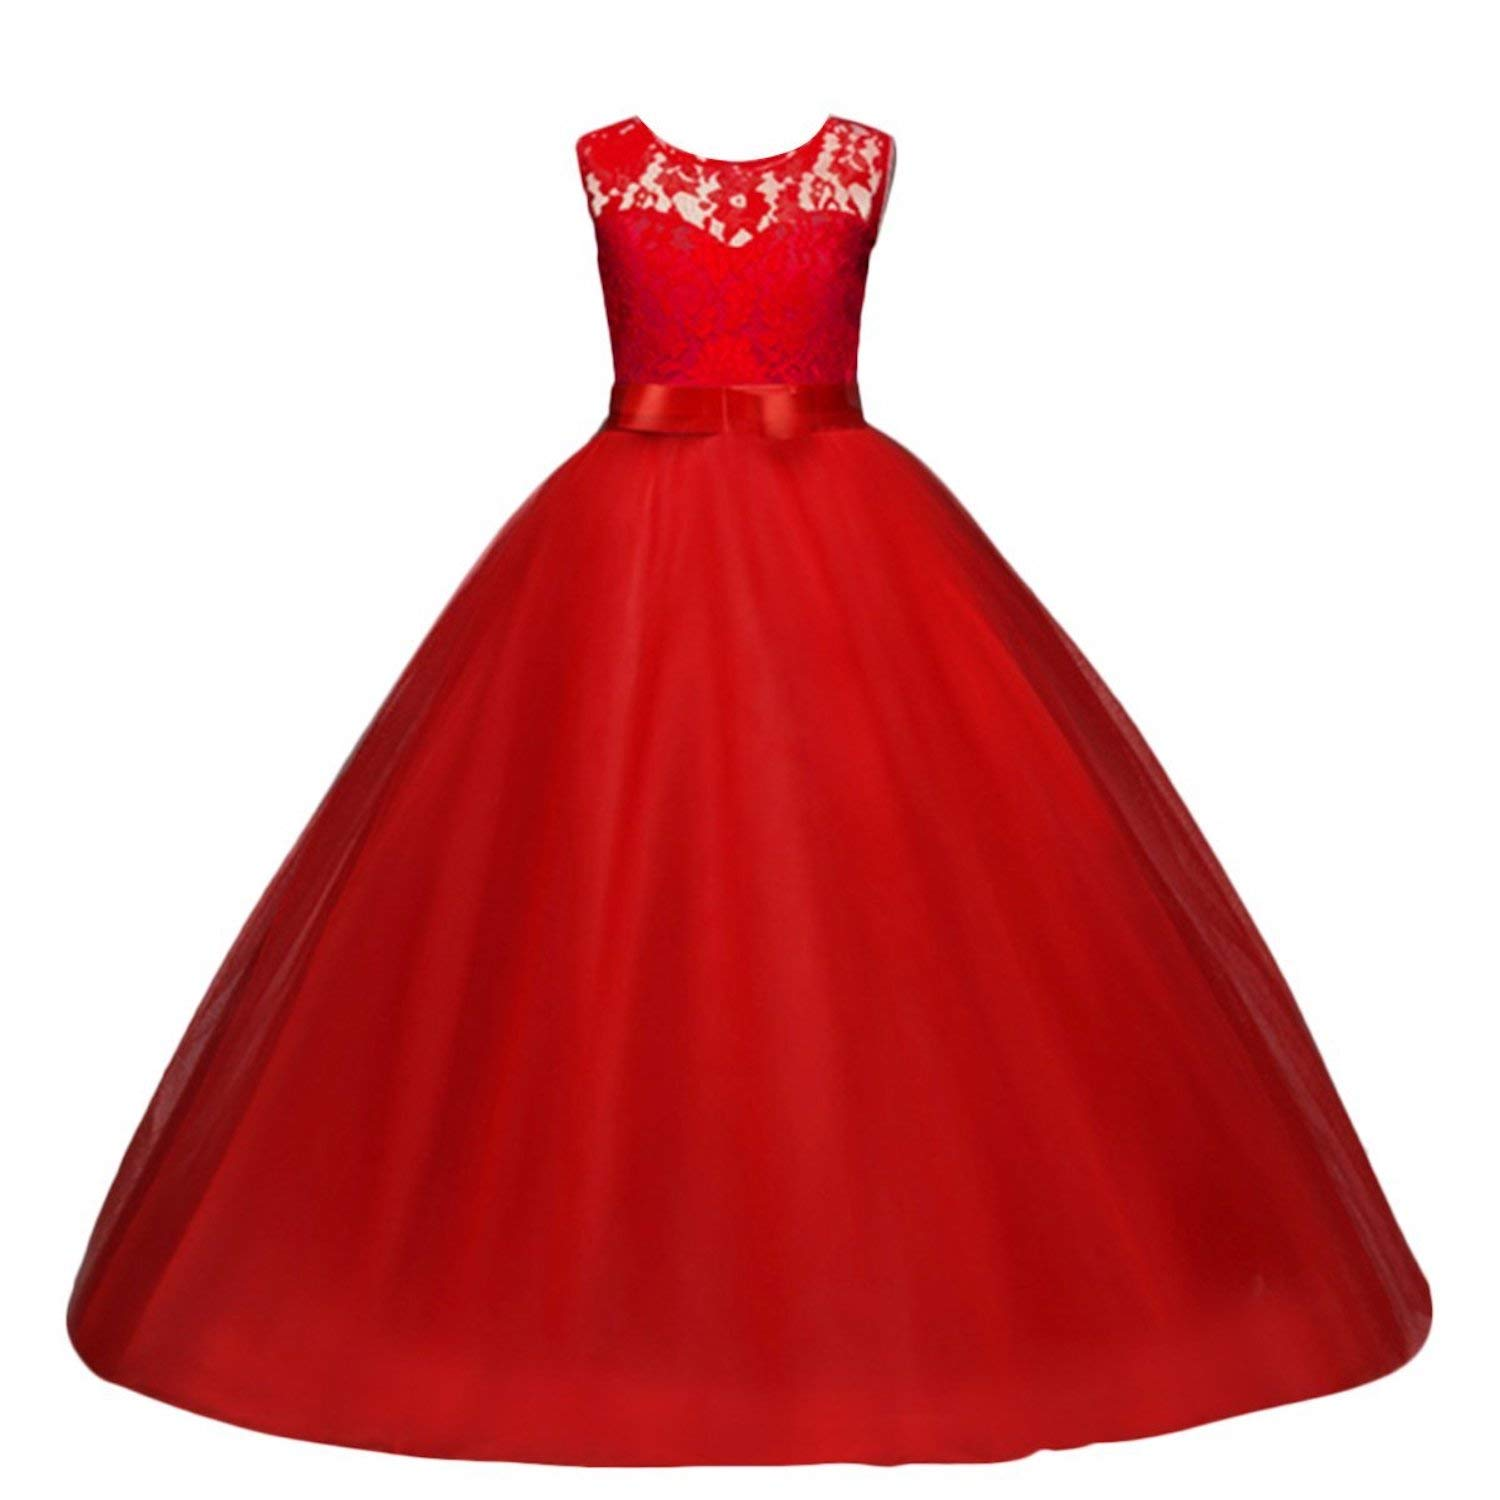 Live It Style It Girls Ball Gown Dress Wedding Princess Bridesmaid Party Prom Birthday for Kids 5-13 Years Old: Amazon.co.uk: Clothing